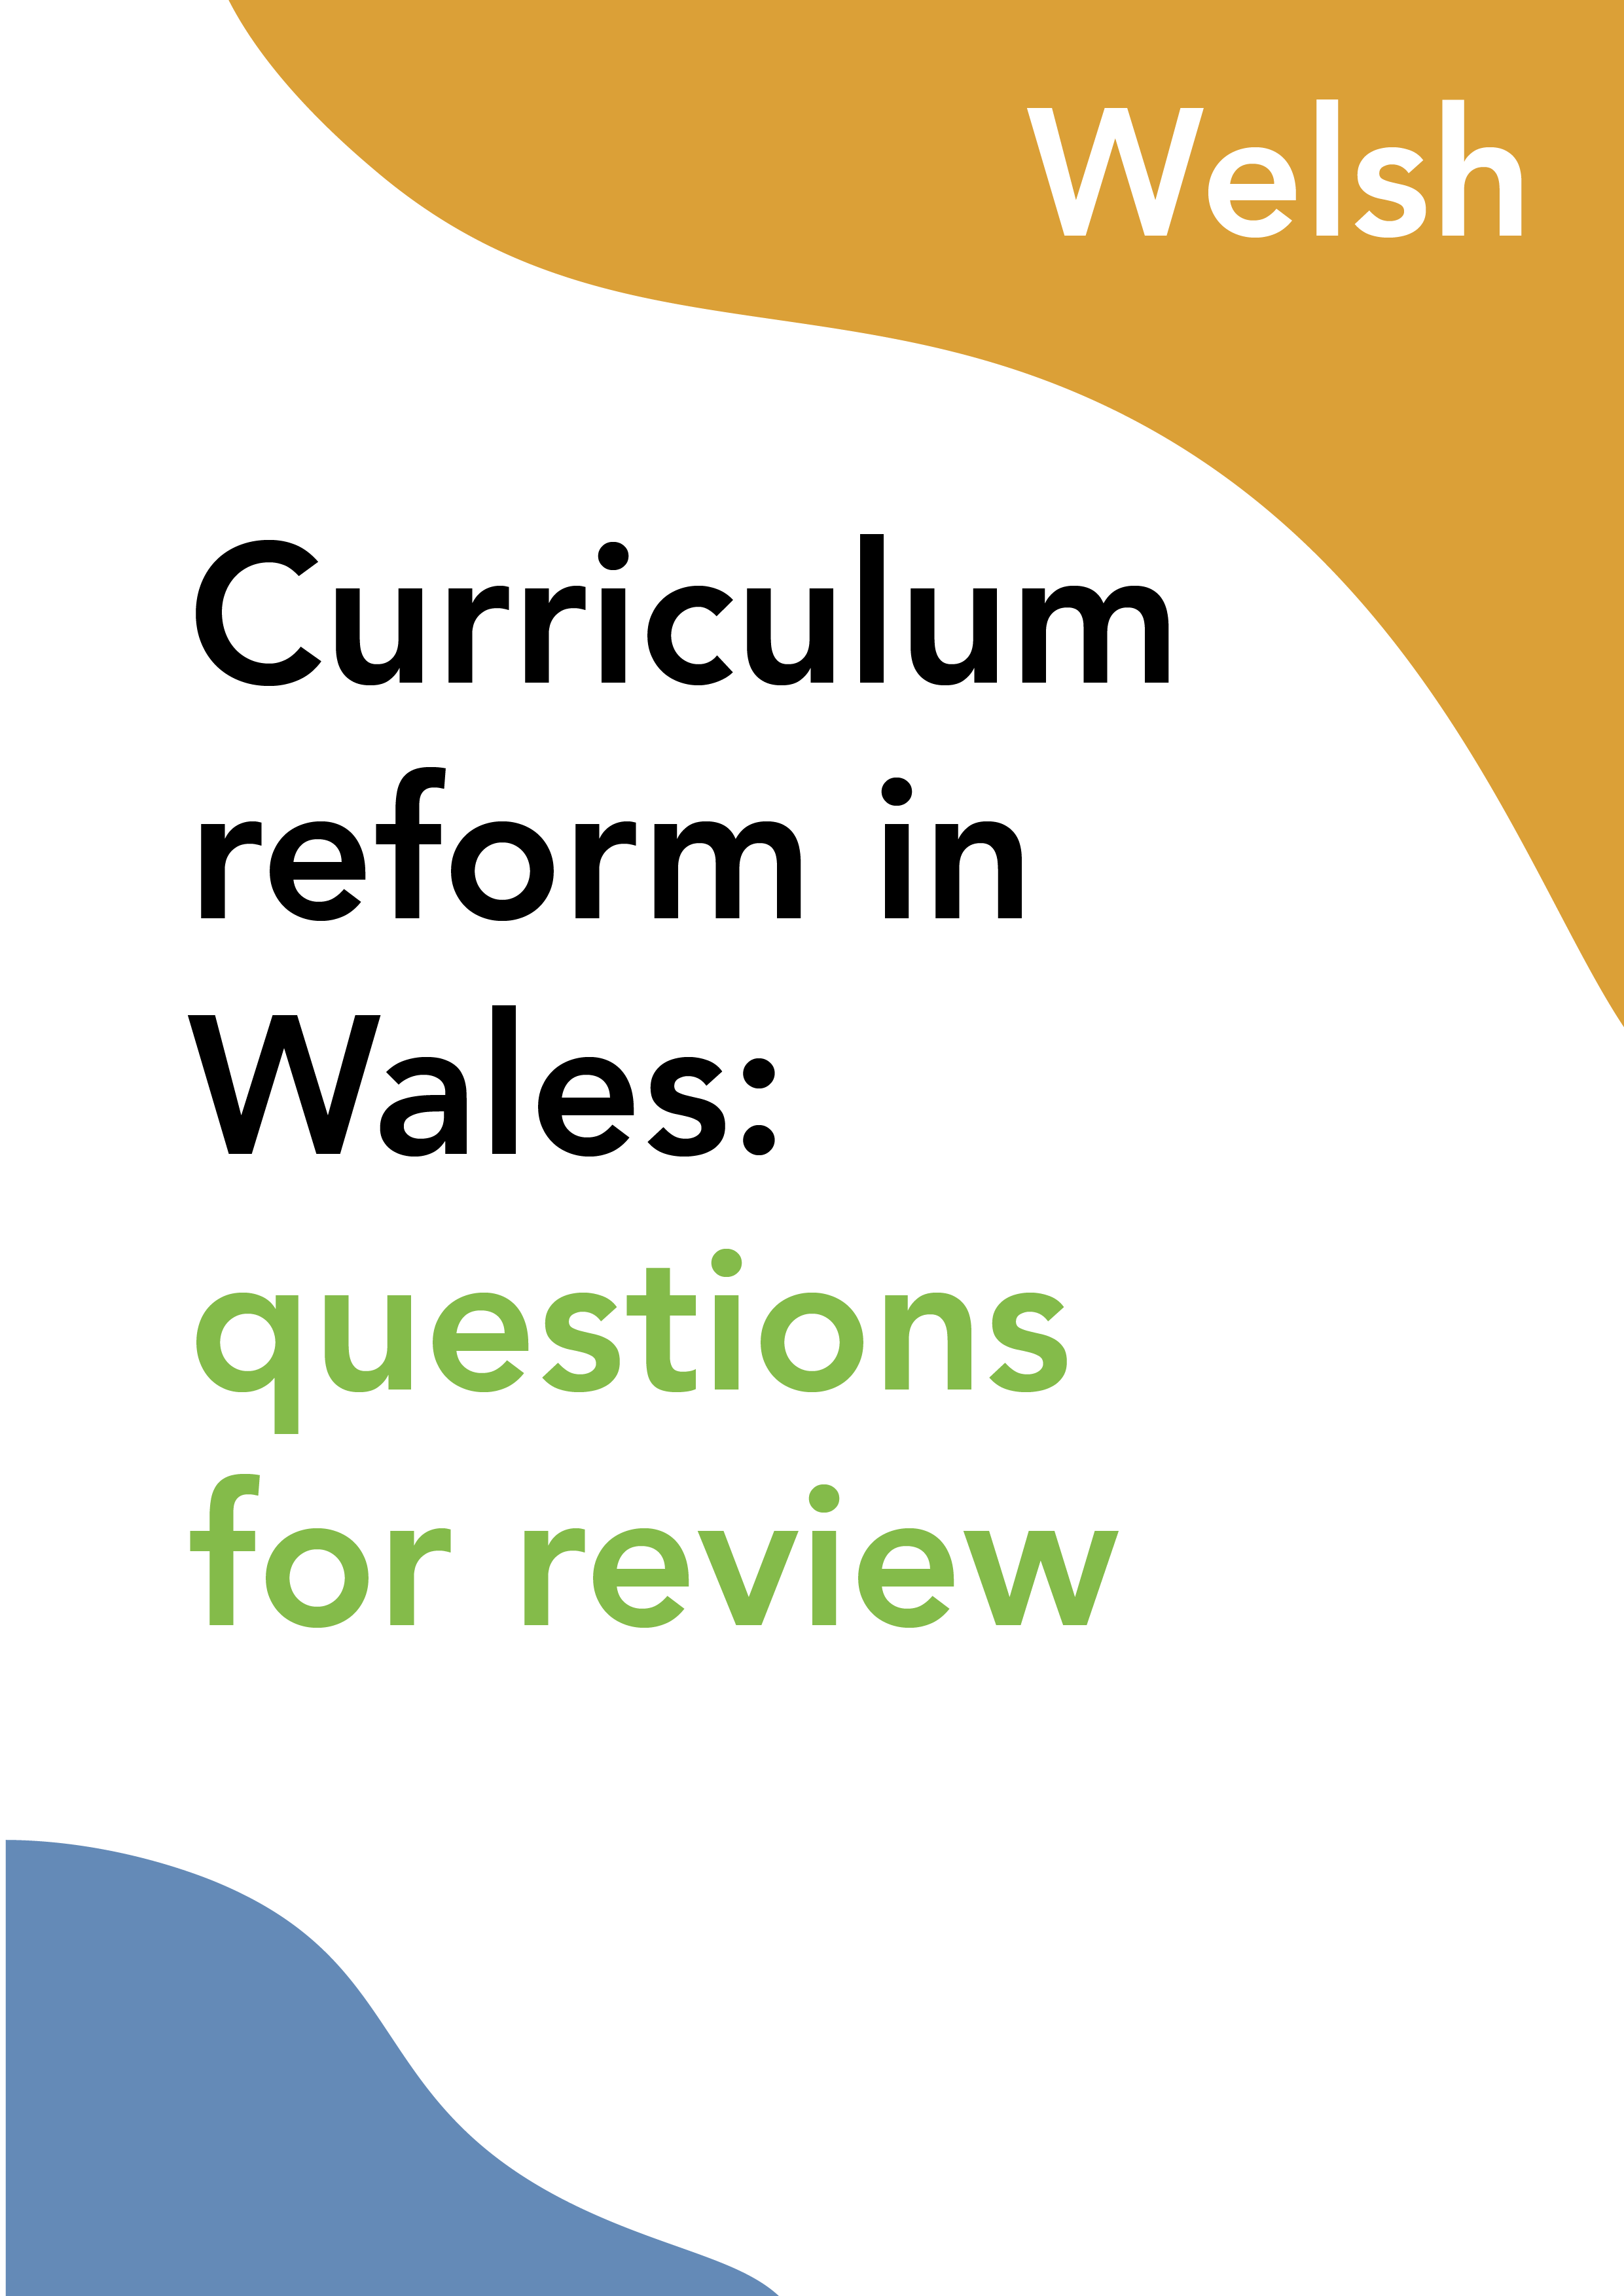 Curriculum reform in Wales: questions for review (Welsh)